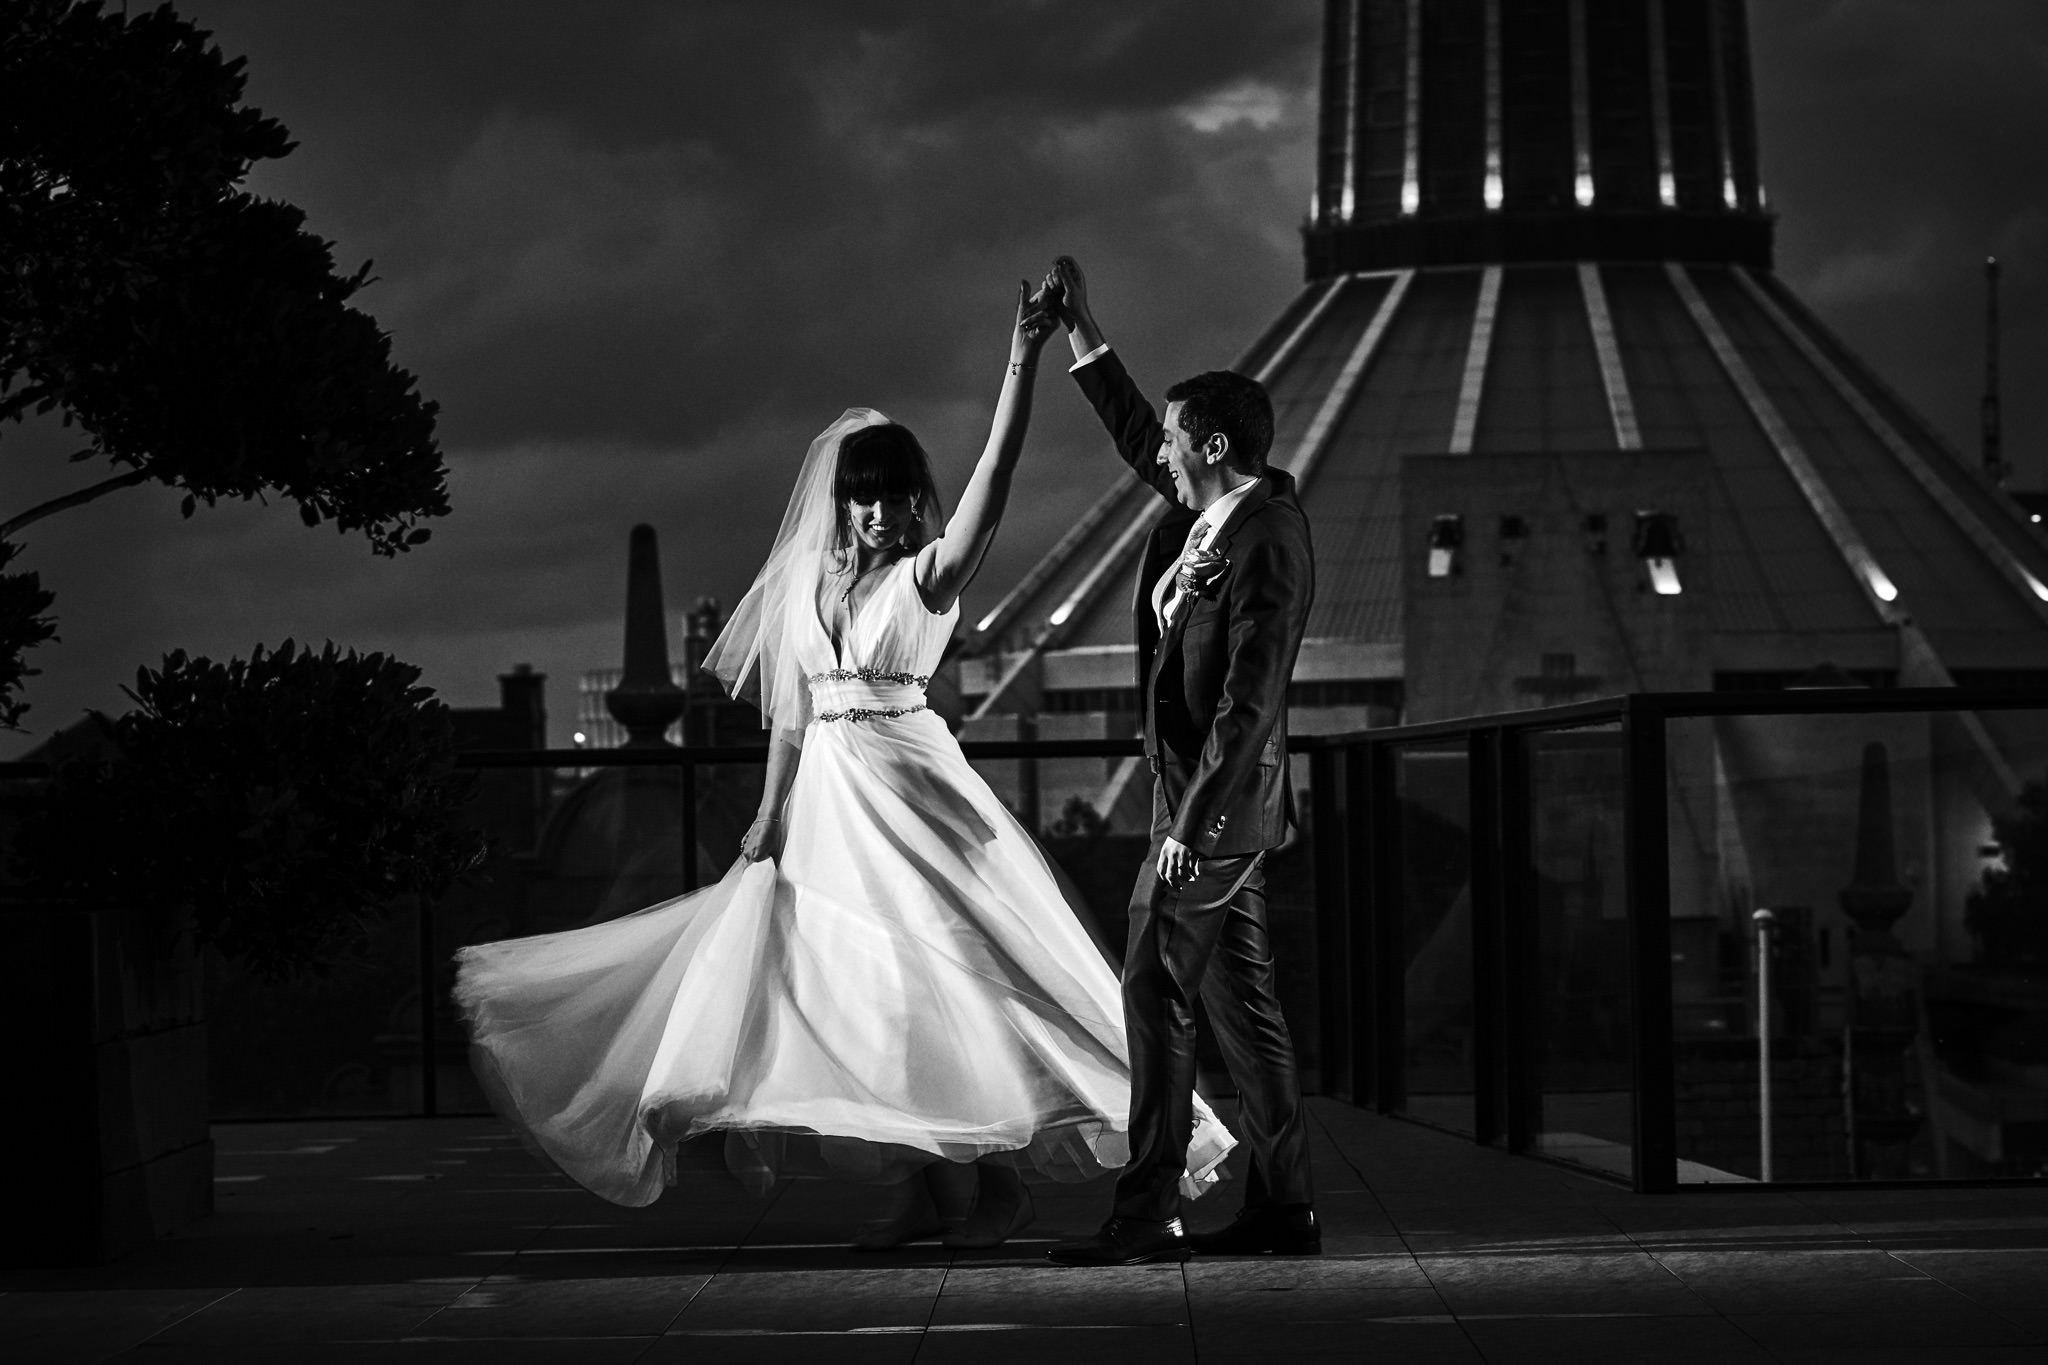 First Dance on the roof of Liverpool